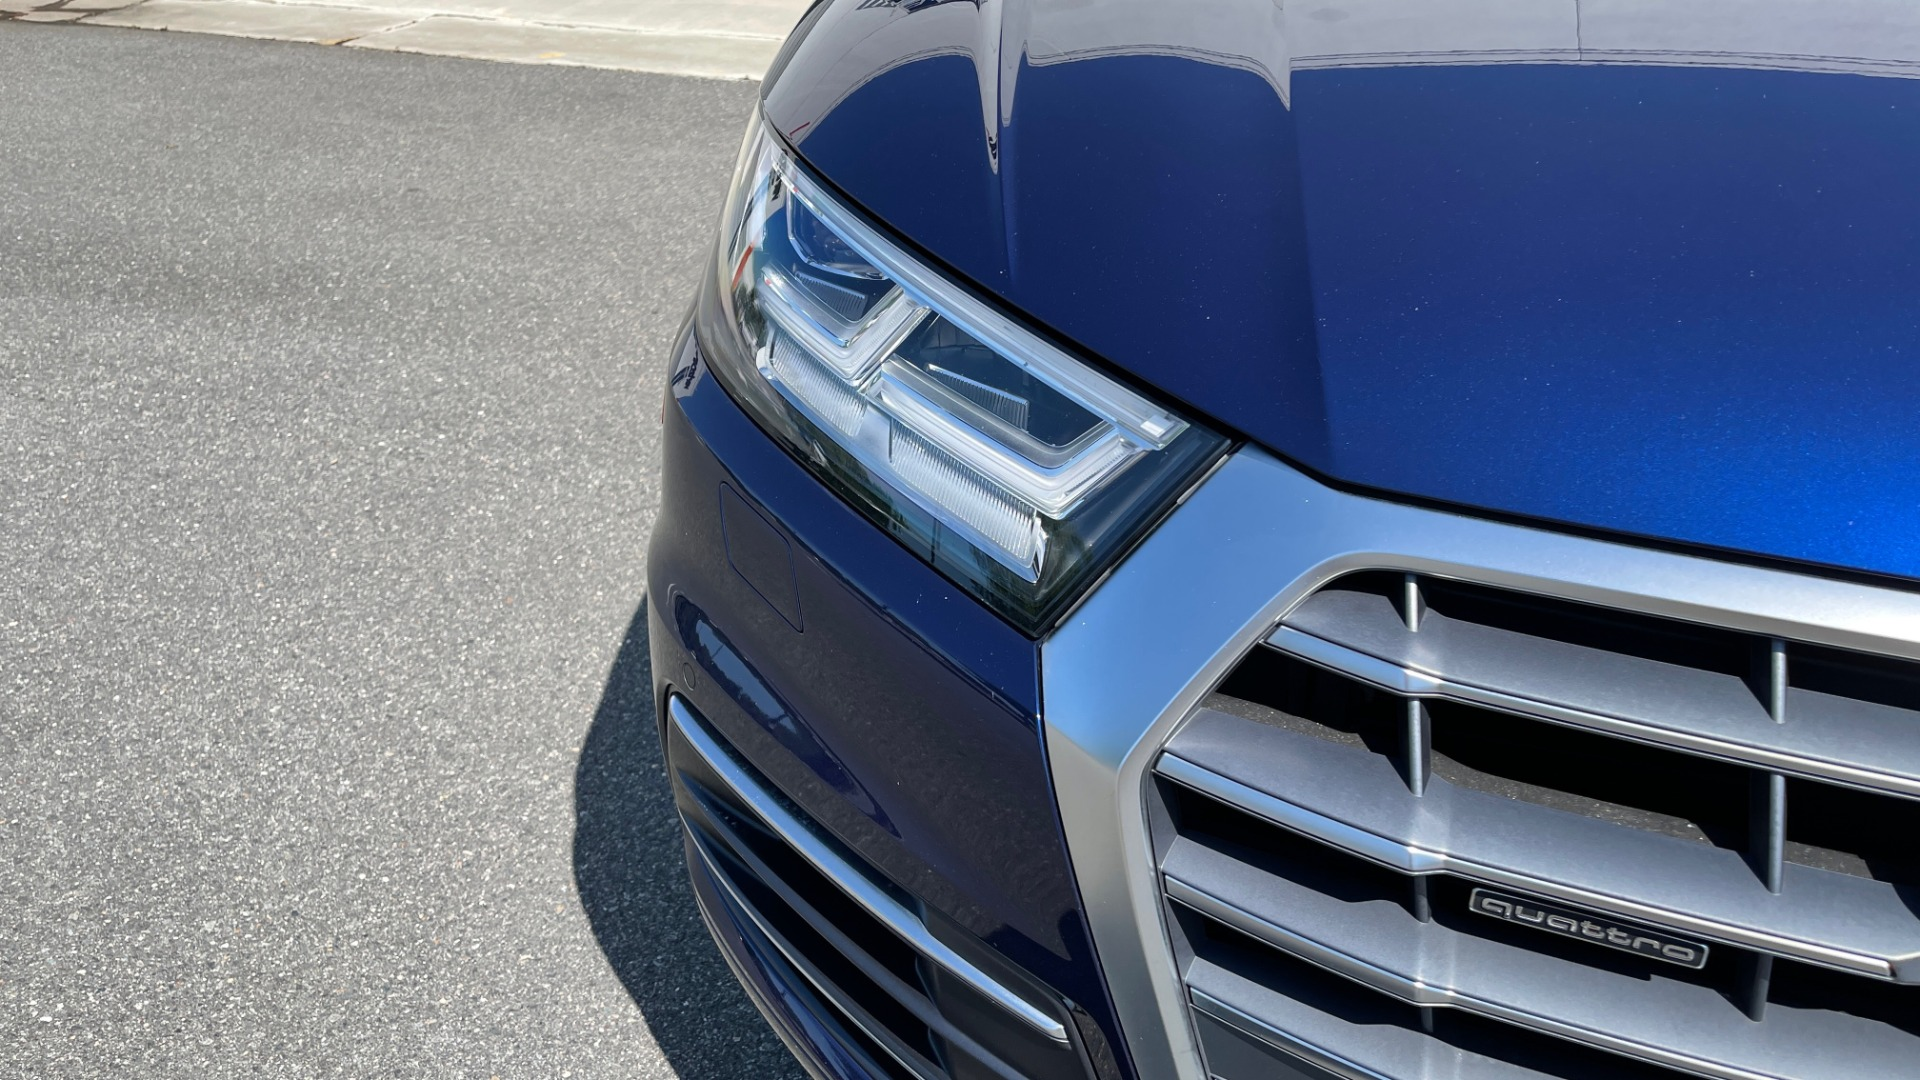 Used 2018 Audi Q5 PREMIUM PLUS / NAV / PANO-ROOF / PARK SYSTEM / REARVIEW for sale $33,695 at Formula Imports in Charlotte NC 28227 11